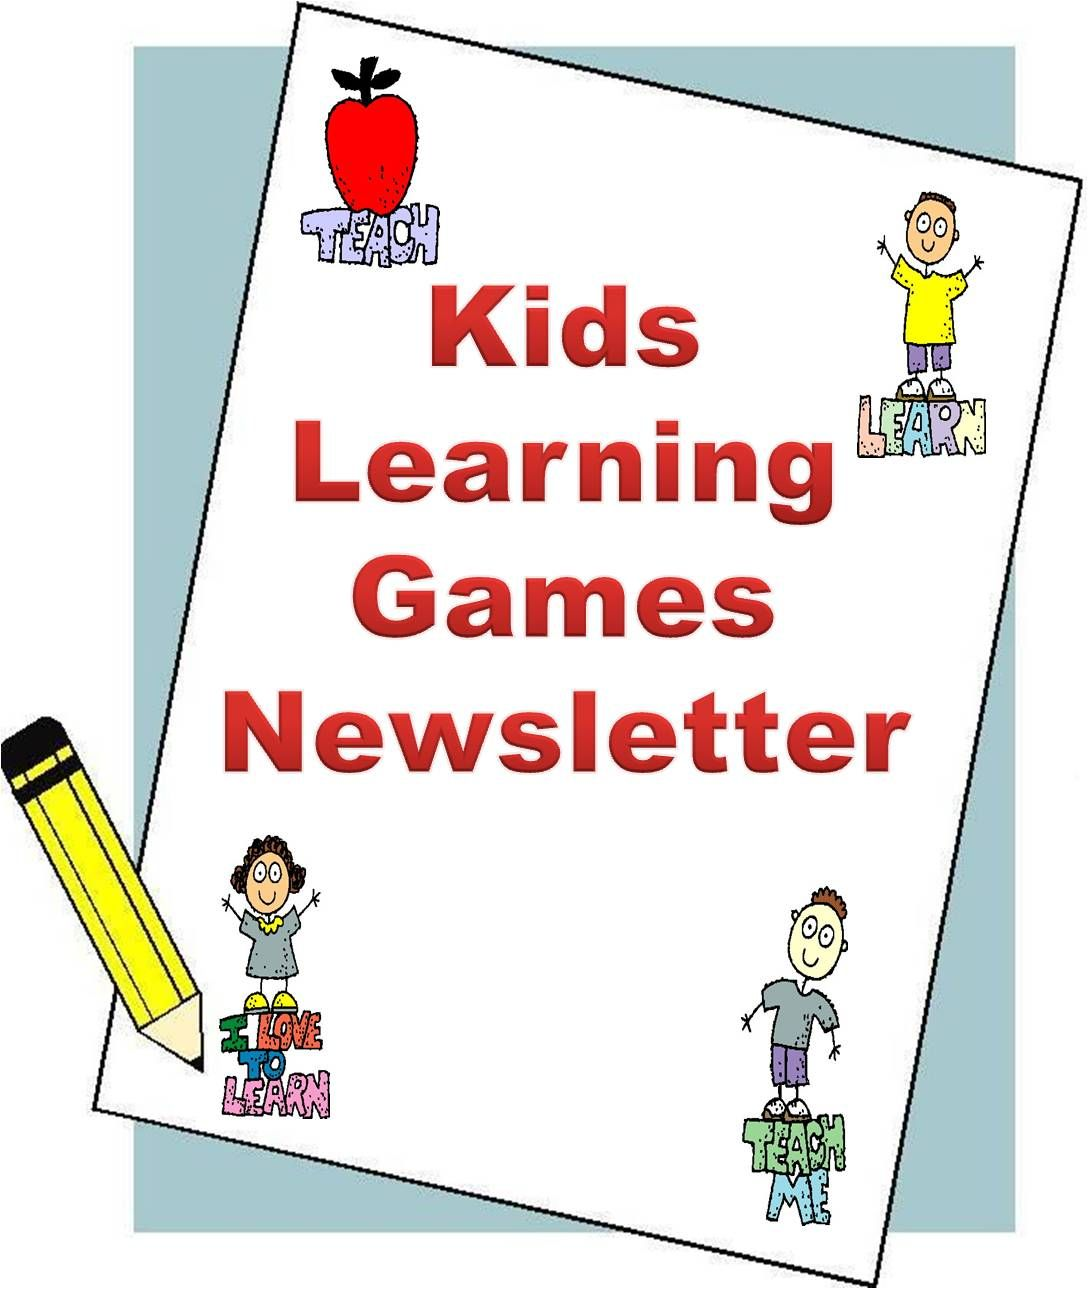 Kids Learning Games Newsletter